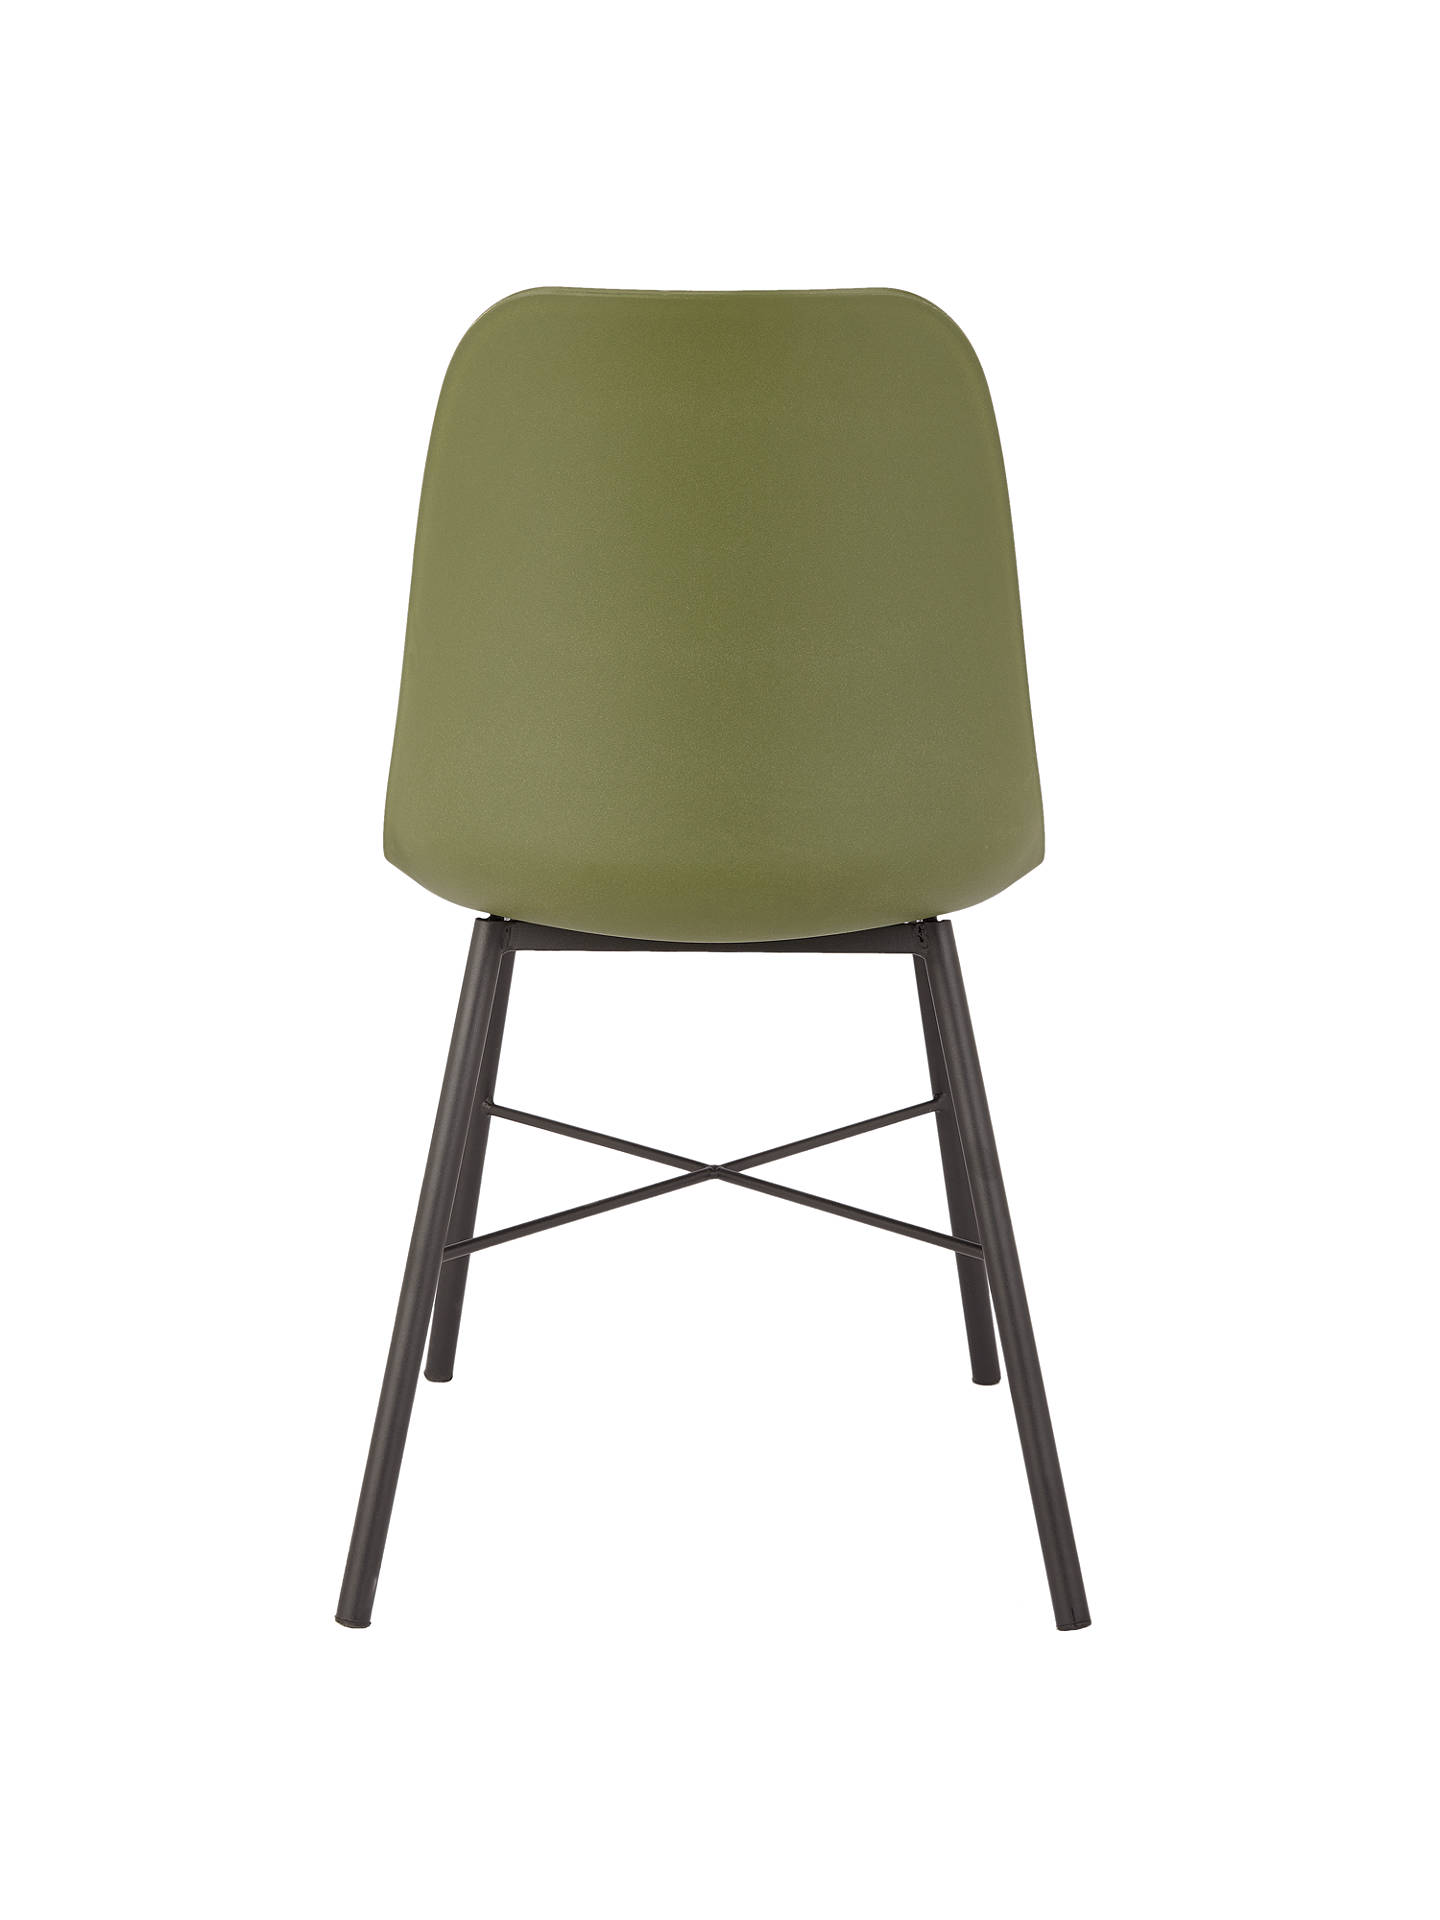 BuyHouse by John Lewis Whistler Dining Chair, Khaki Online at johnlewis.com